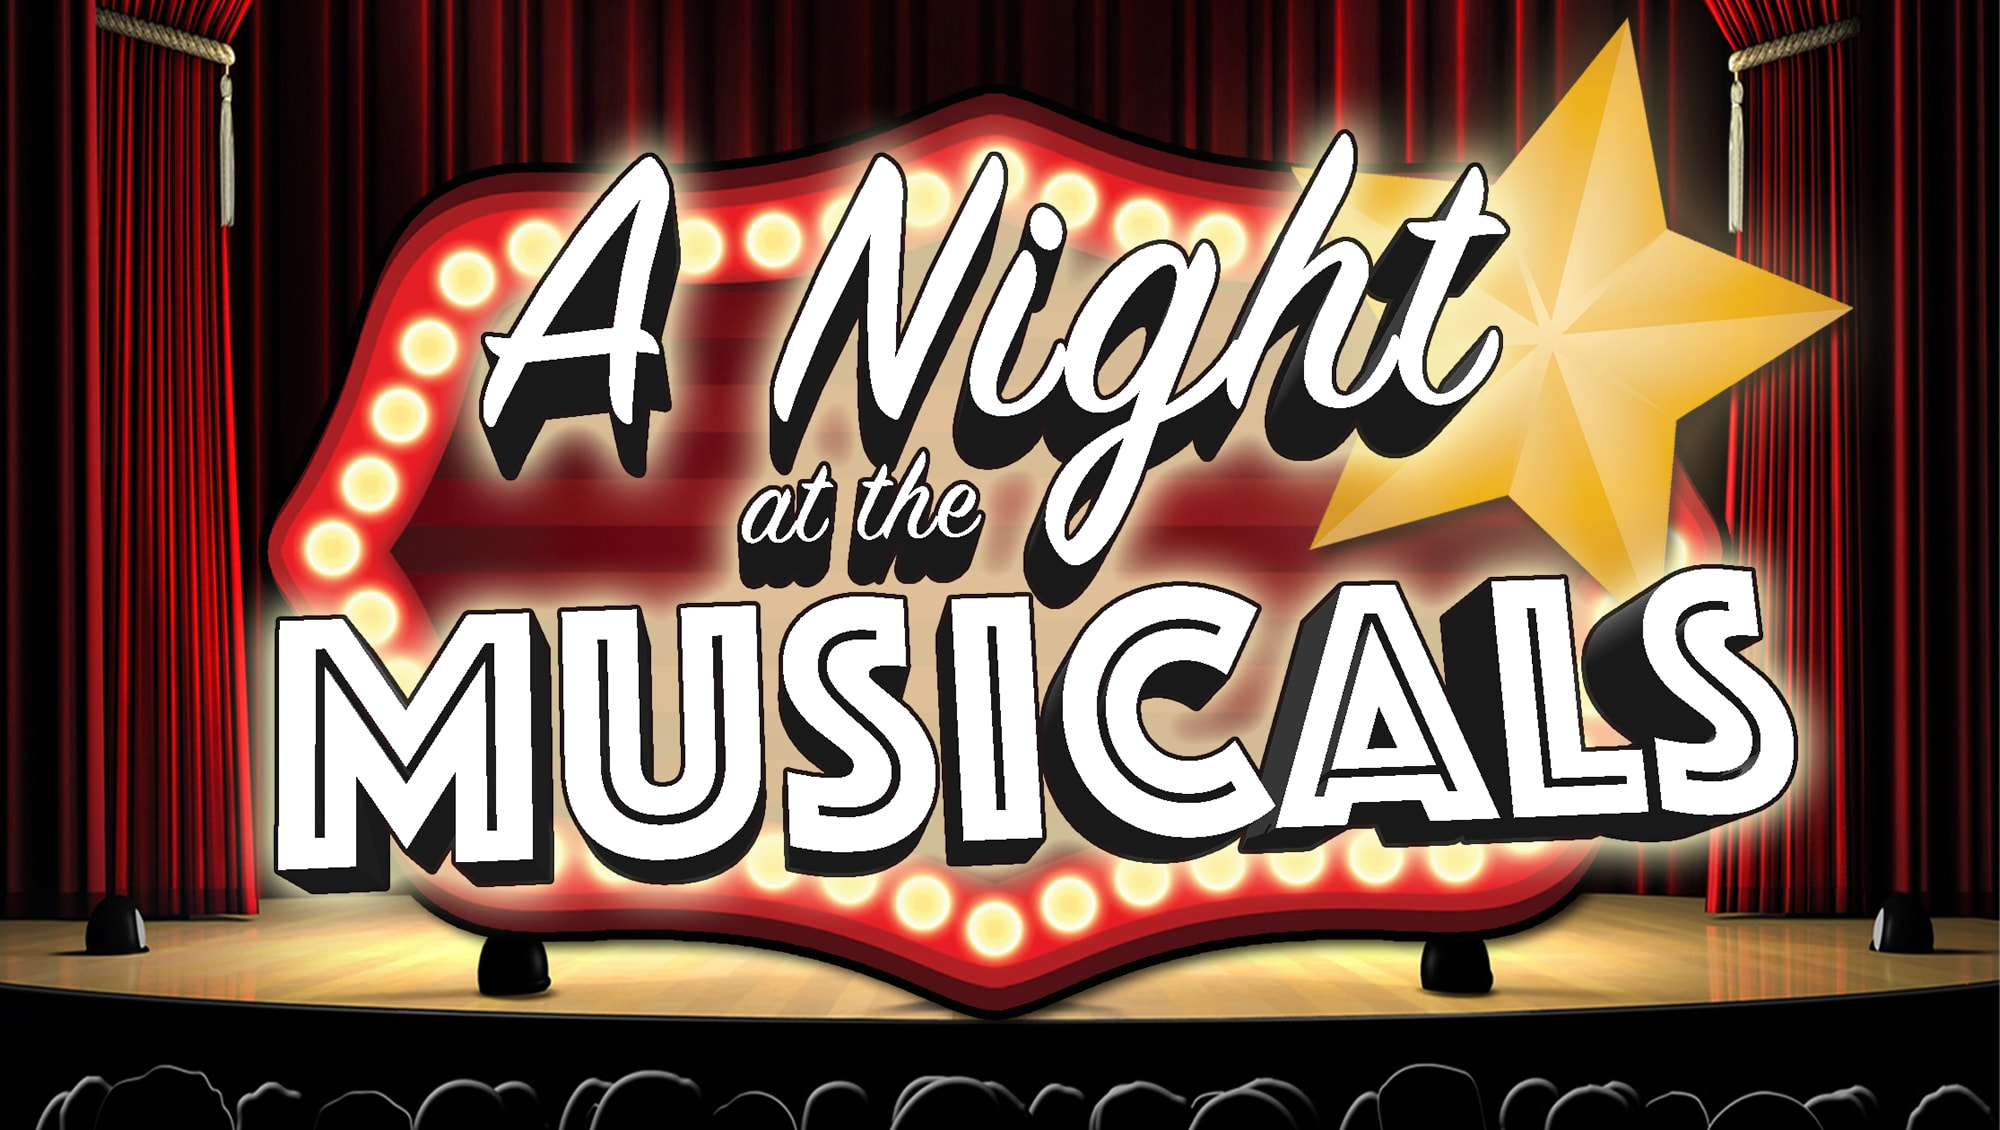 A Night at the musicals title